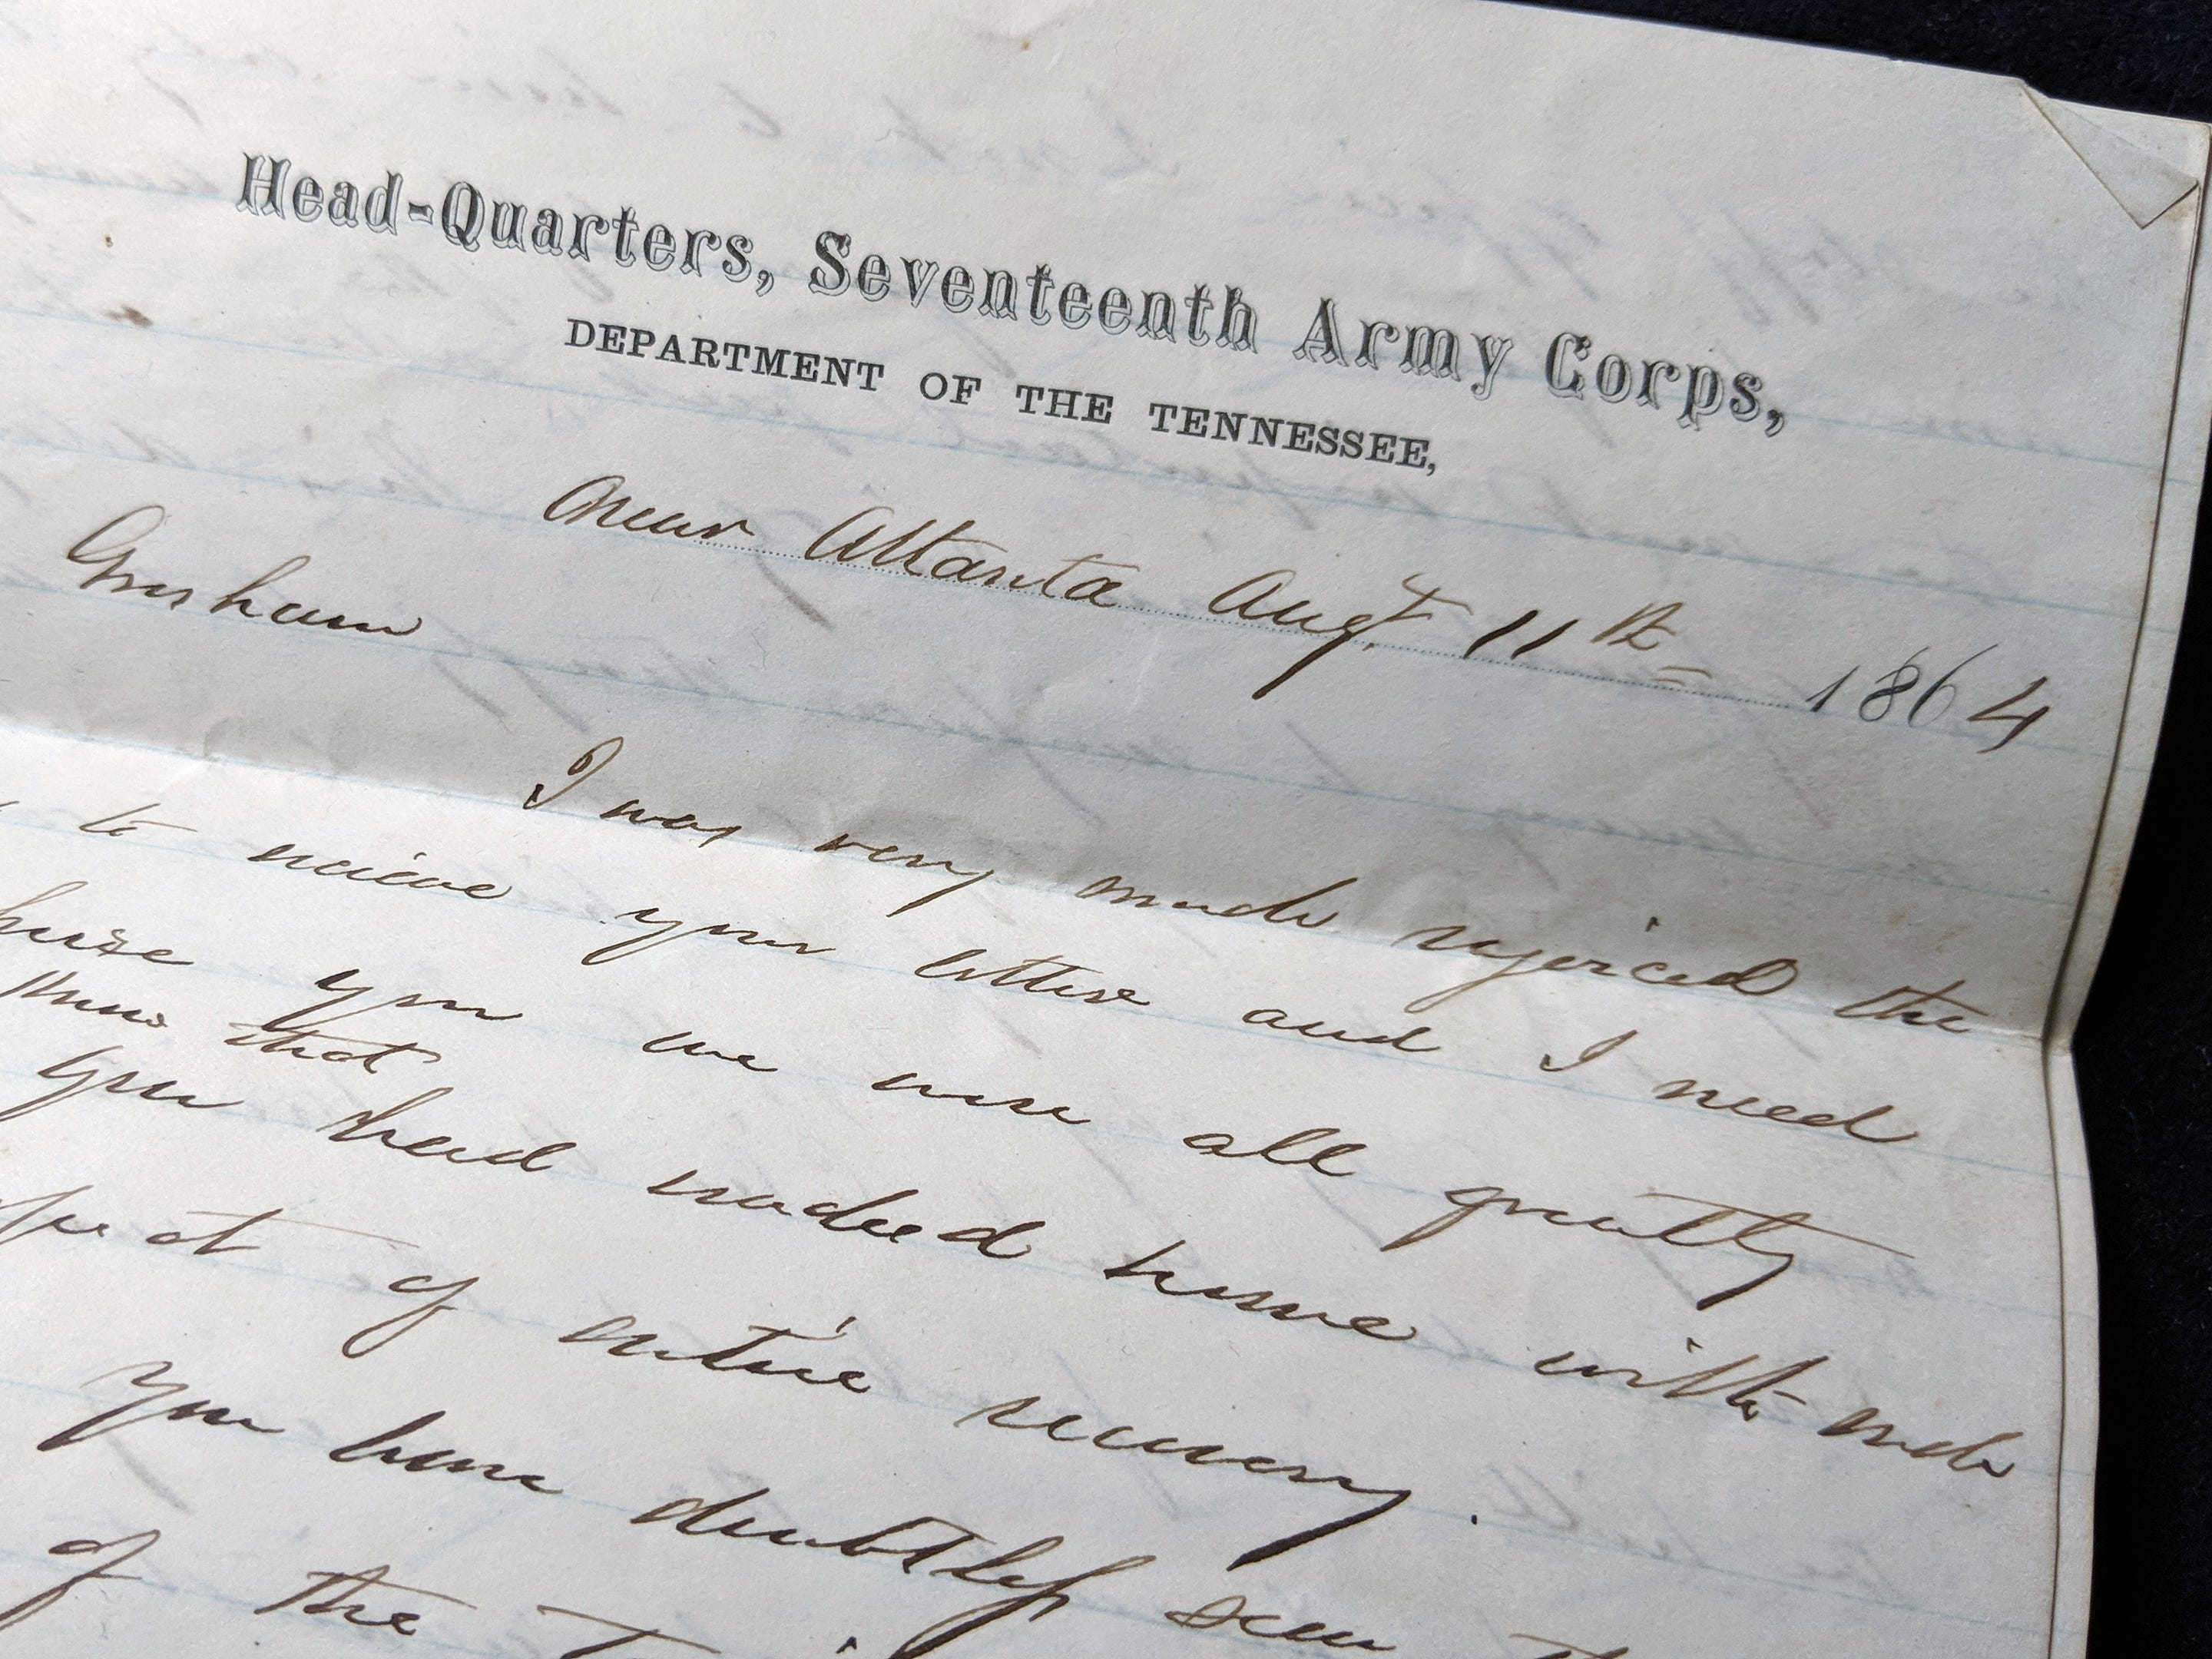 This Civil War 12-page ink letter from Gen. Francis Preston Blair Jr.was written in 1864 to Gen. Walter Quintin Gresham on headquarters 17th Army Corps letterhead. The letter describes details of battle, losses, tactics and troop movements.